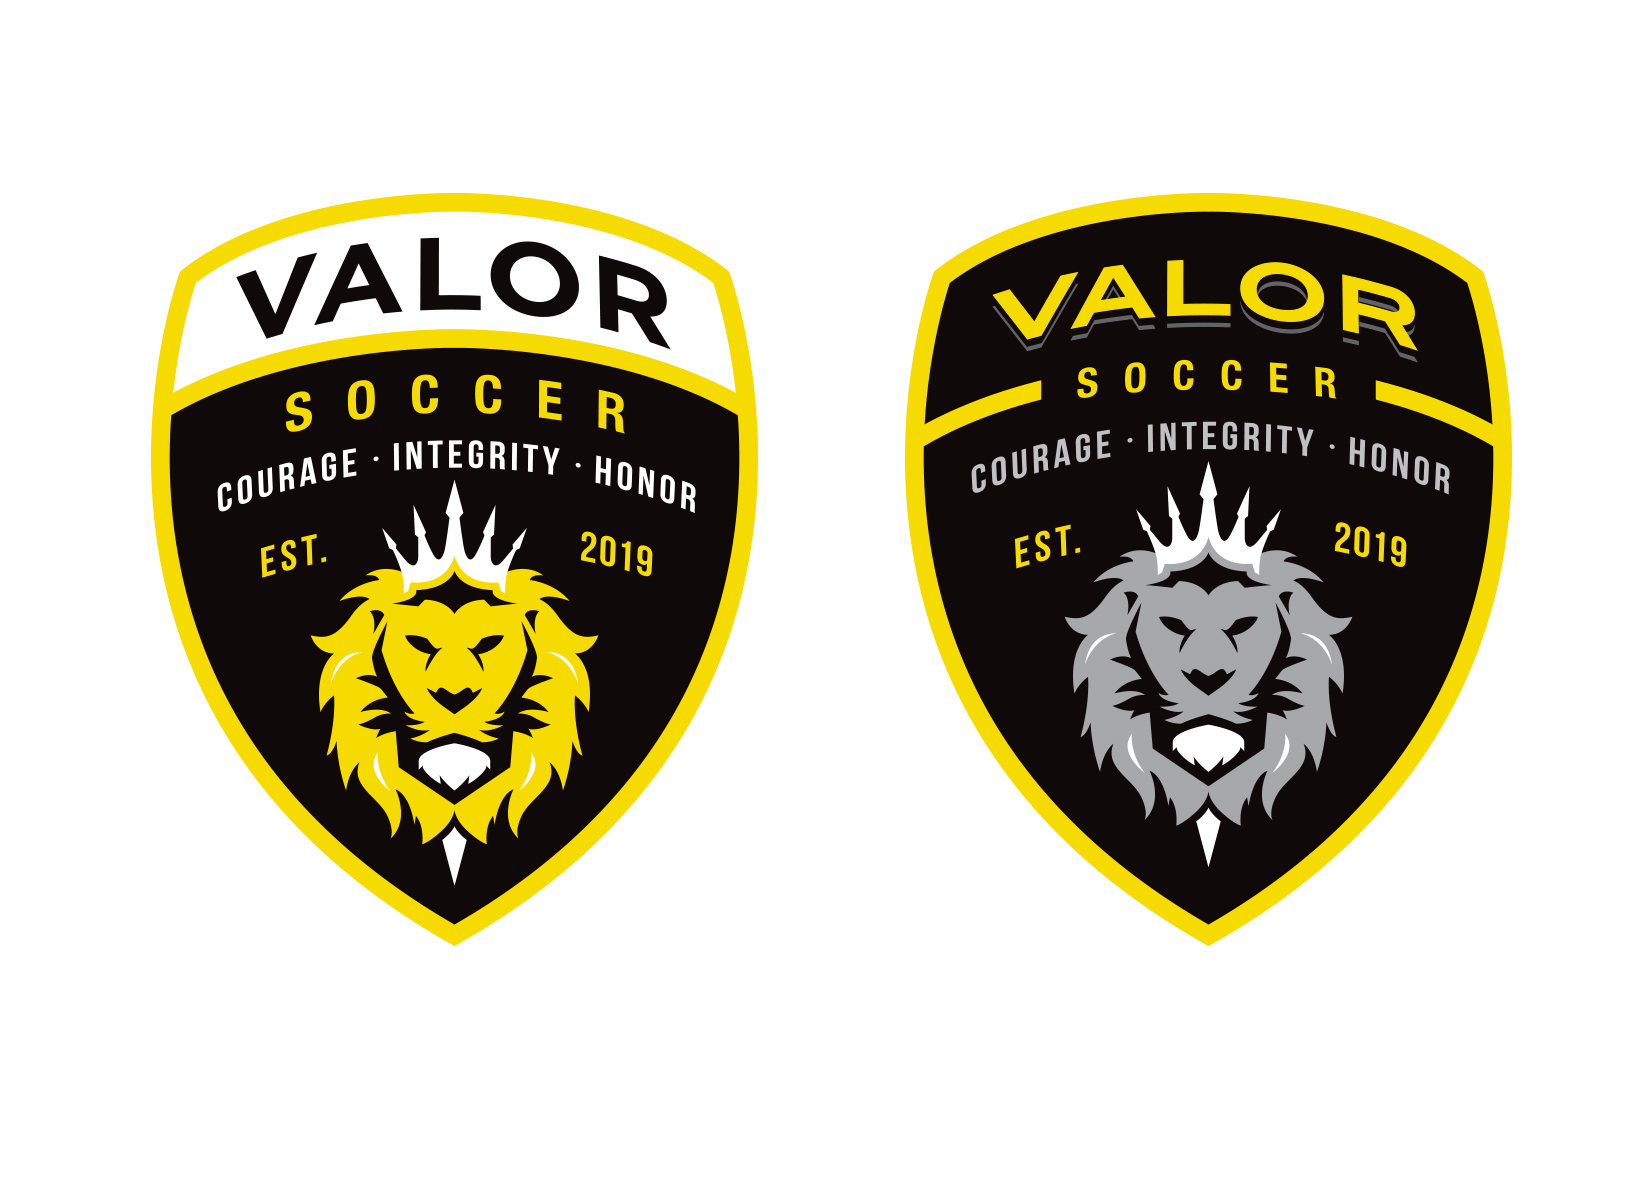 valor-custom-soccer-crest-designs-by-jordan-fretz-1.jpg